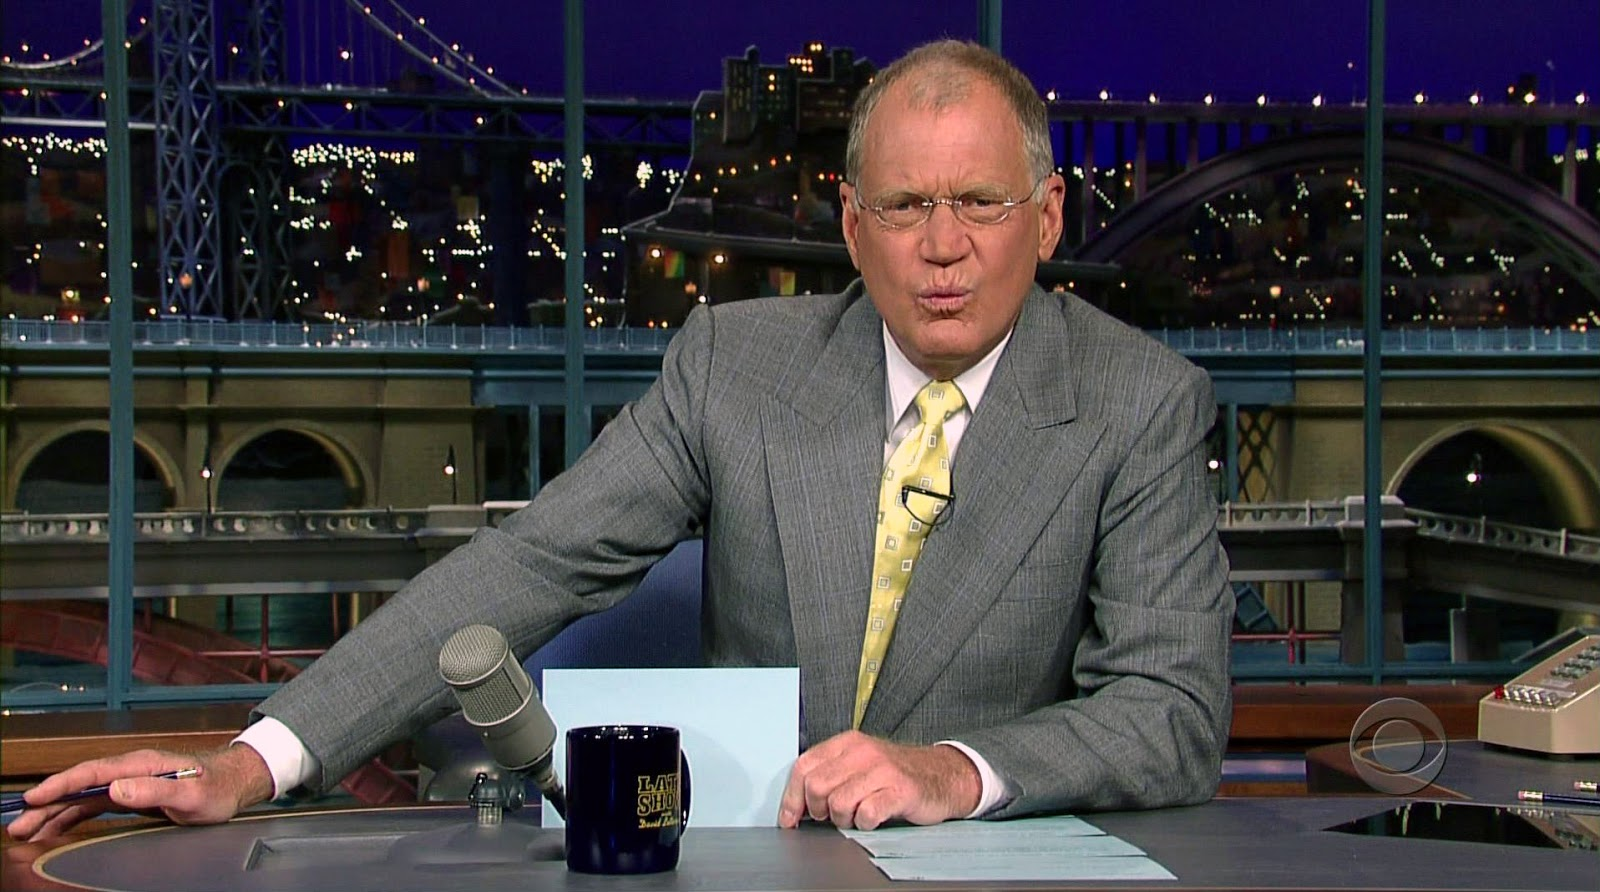 ROTW - Who Should Replace David Letterman?